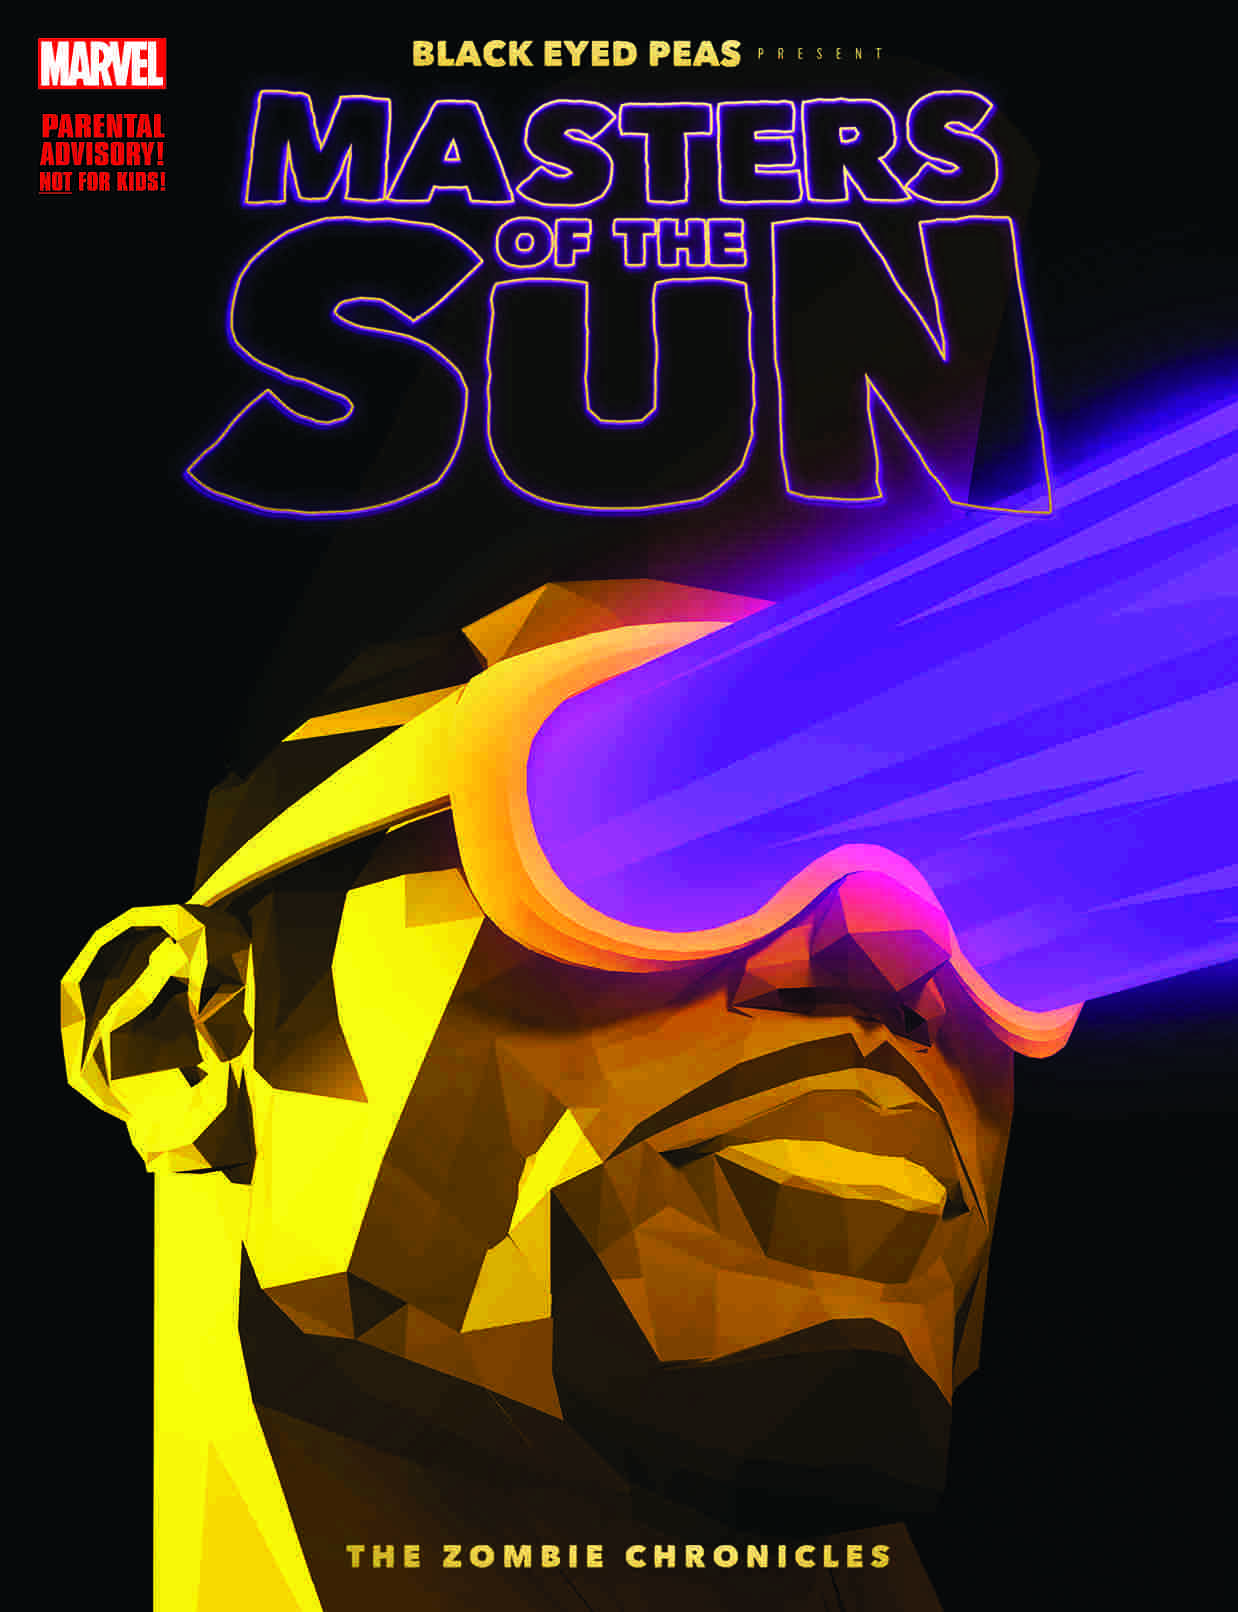 Marvel Teams Up With will.i.am For Masters Of The Sun - The Zombie Chronicles